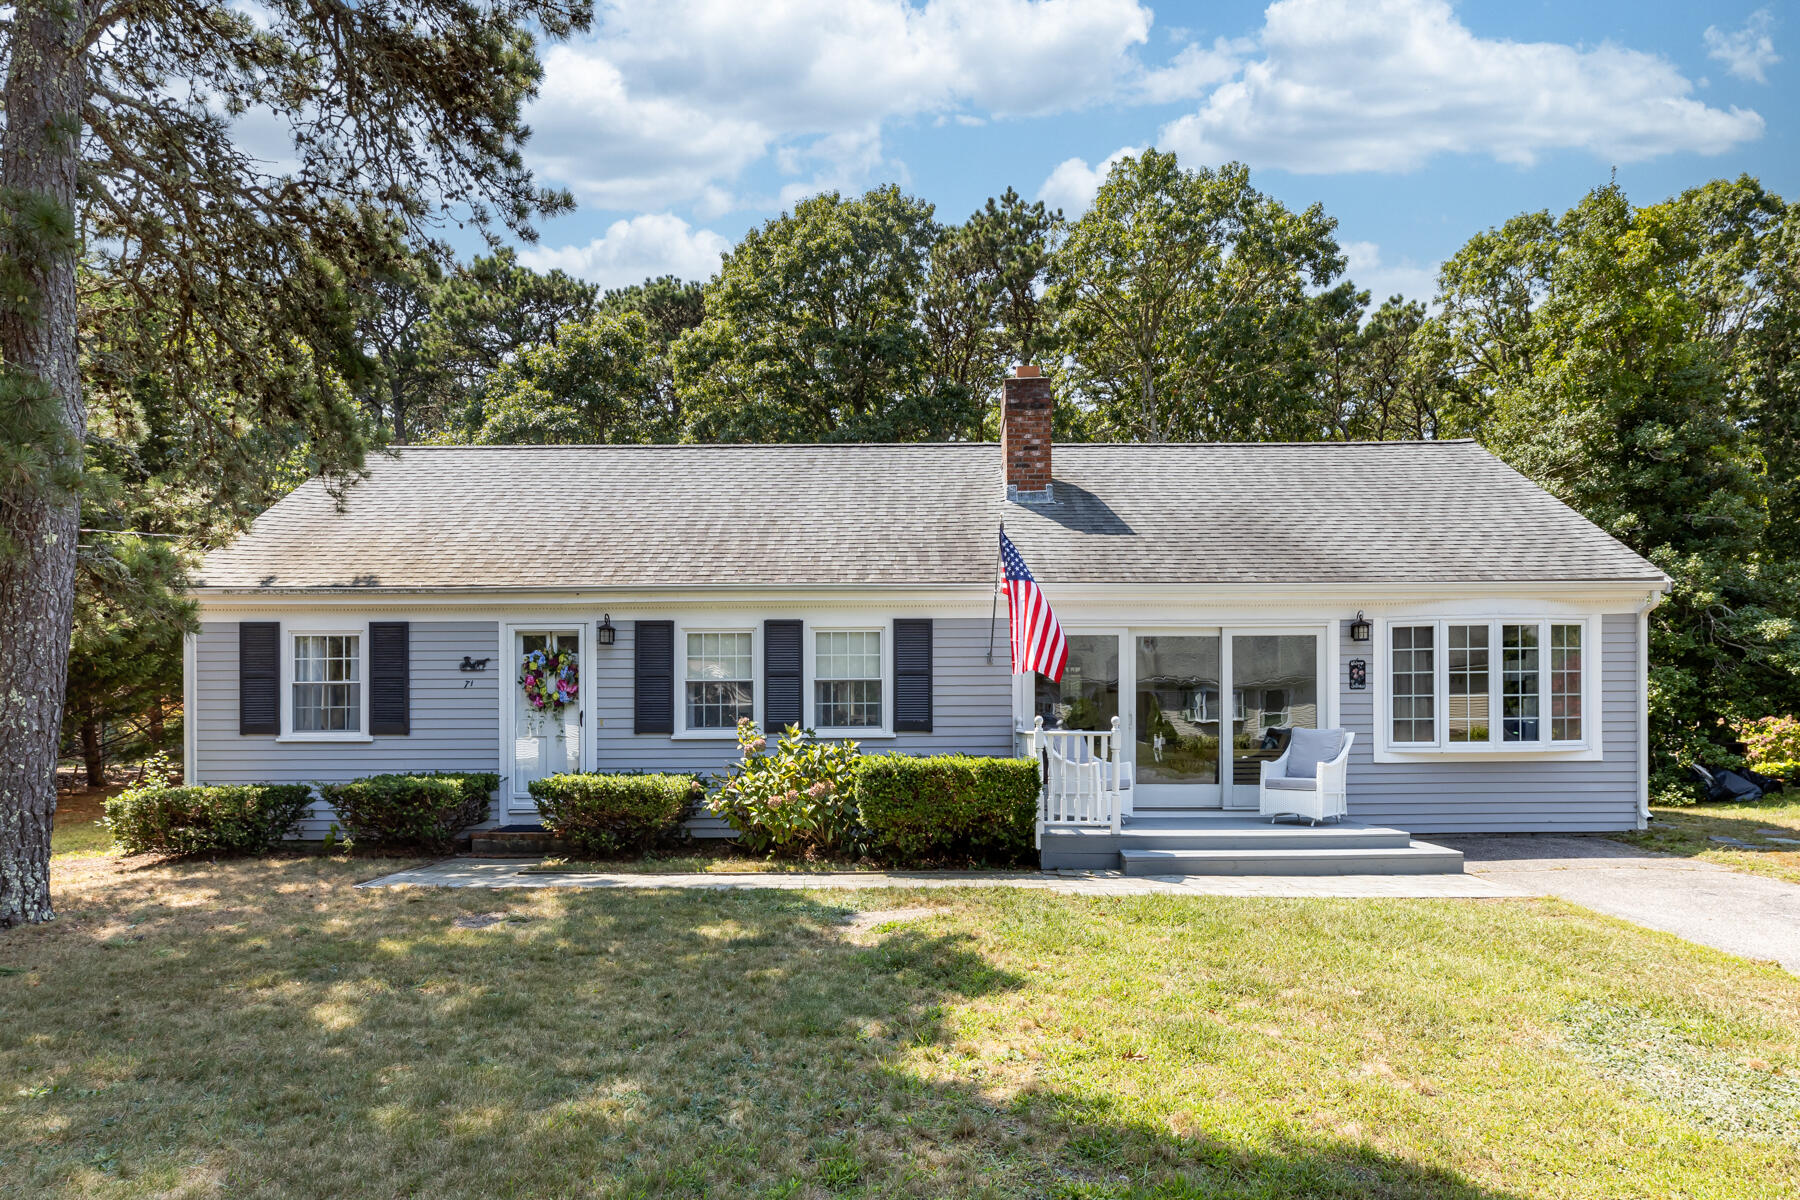 71 Taft Road, West Yarmouth MA, 02673 details